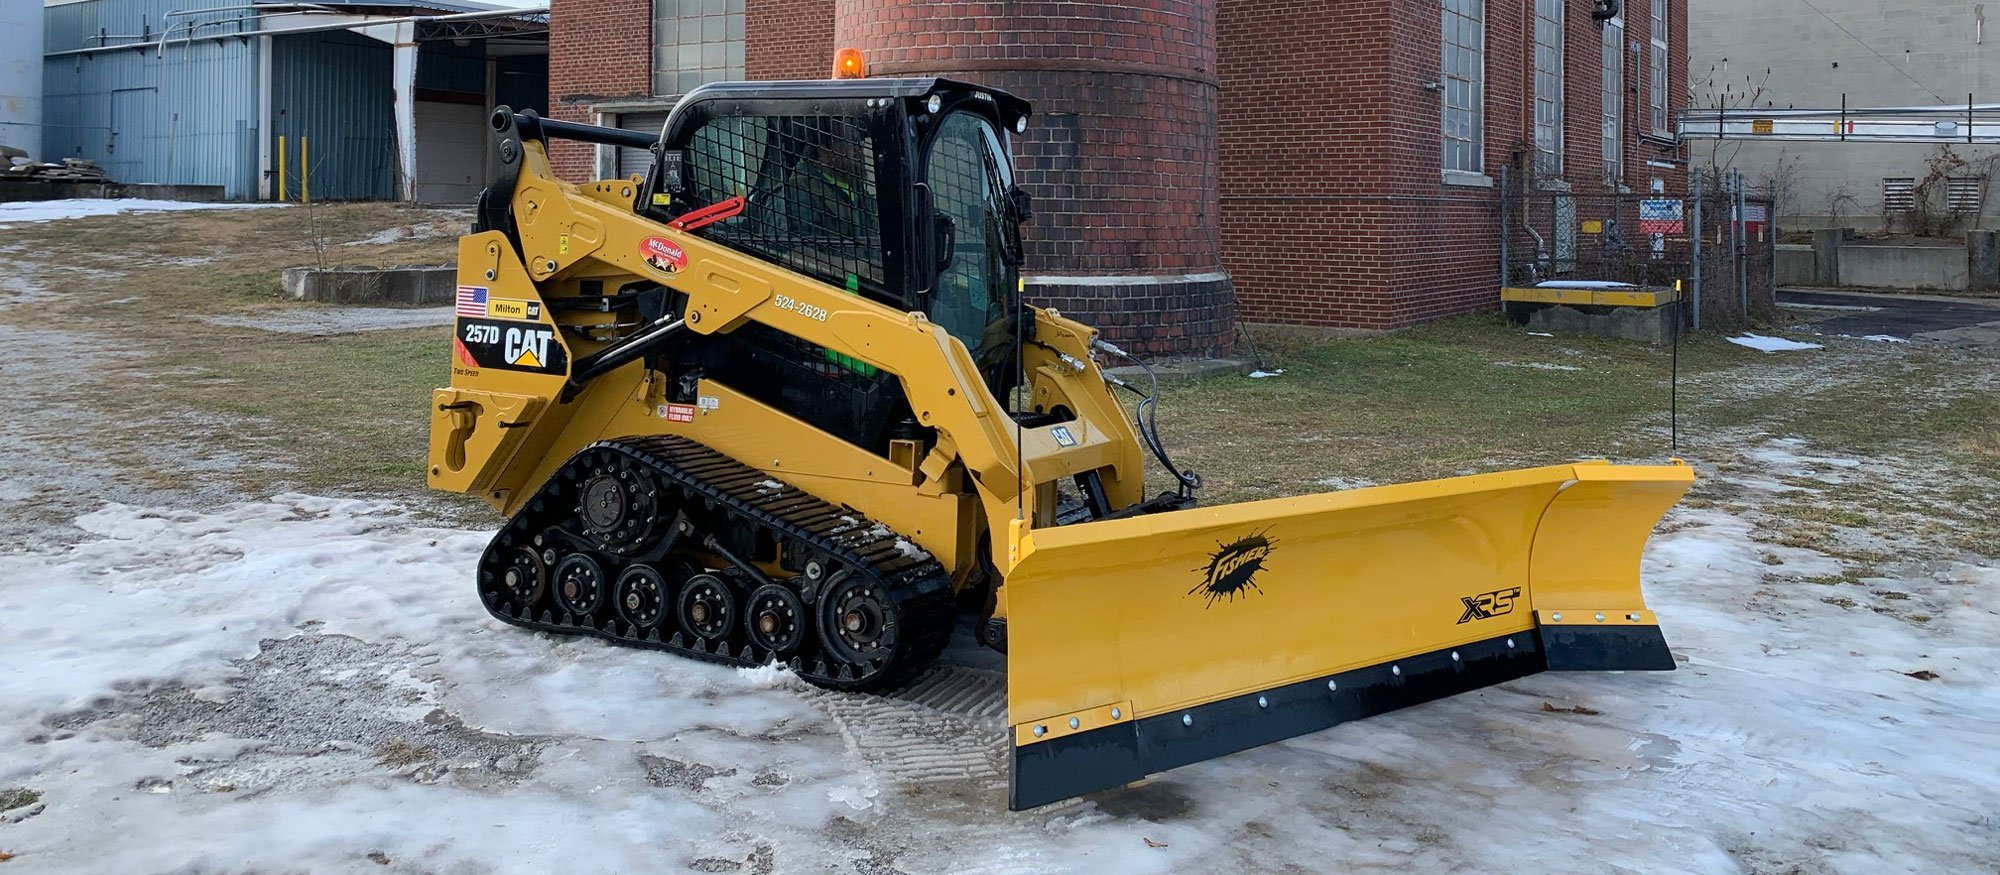 St-Albans-Commercial-Snow-Removal-by-McDonald-Property-Maintenance-Skidsteer